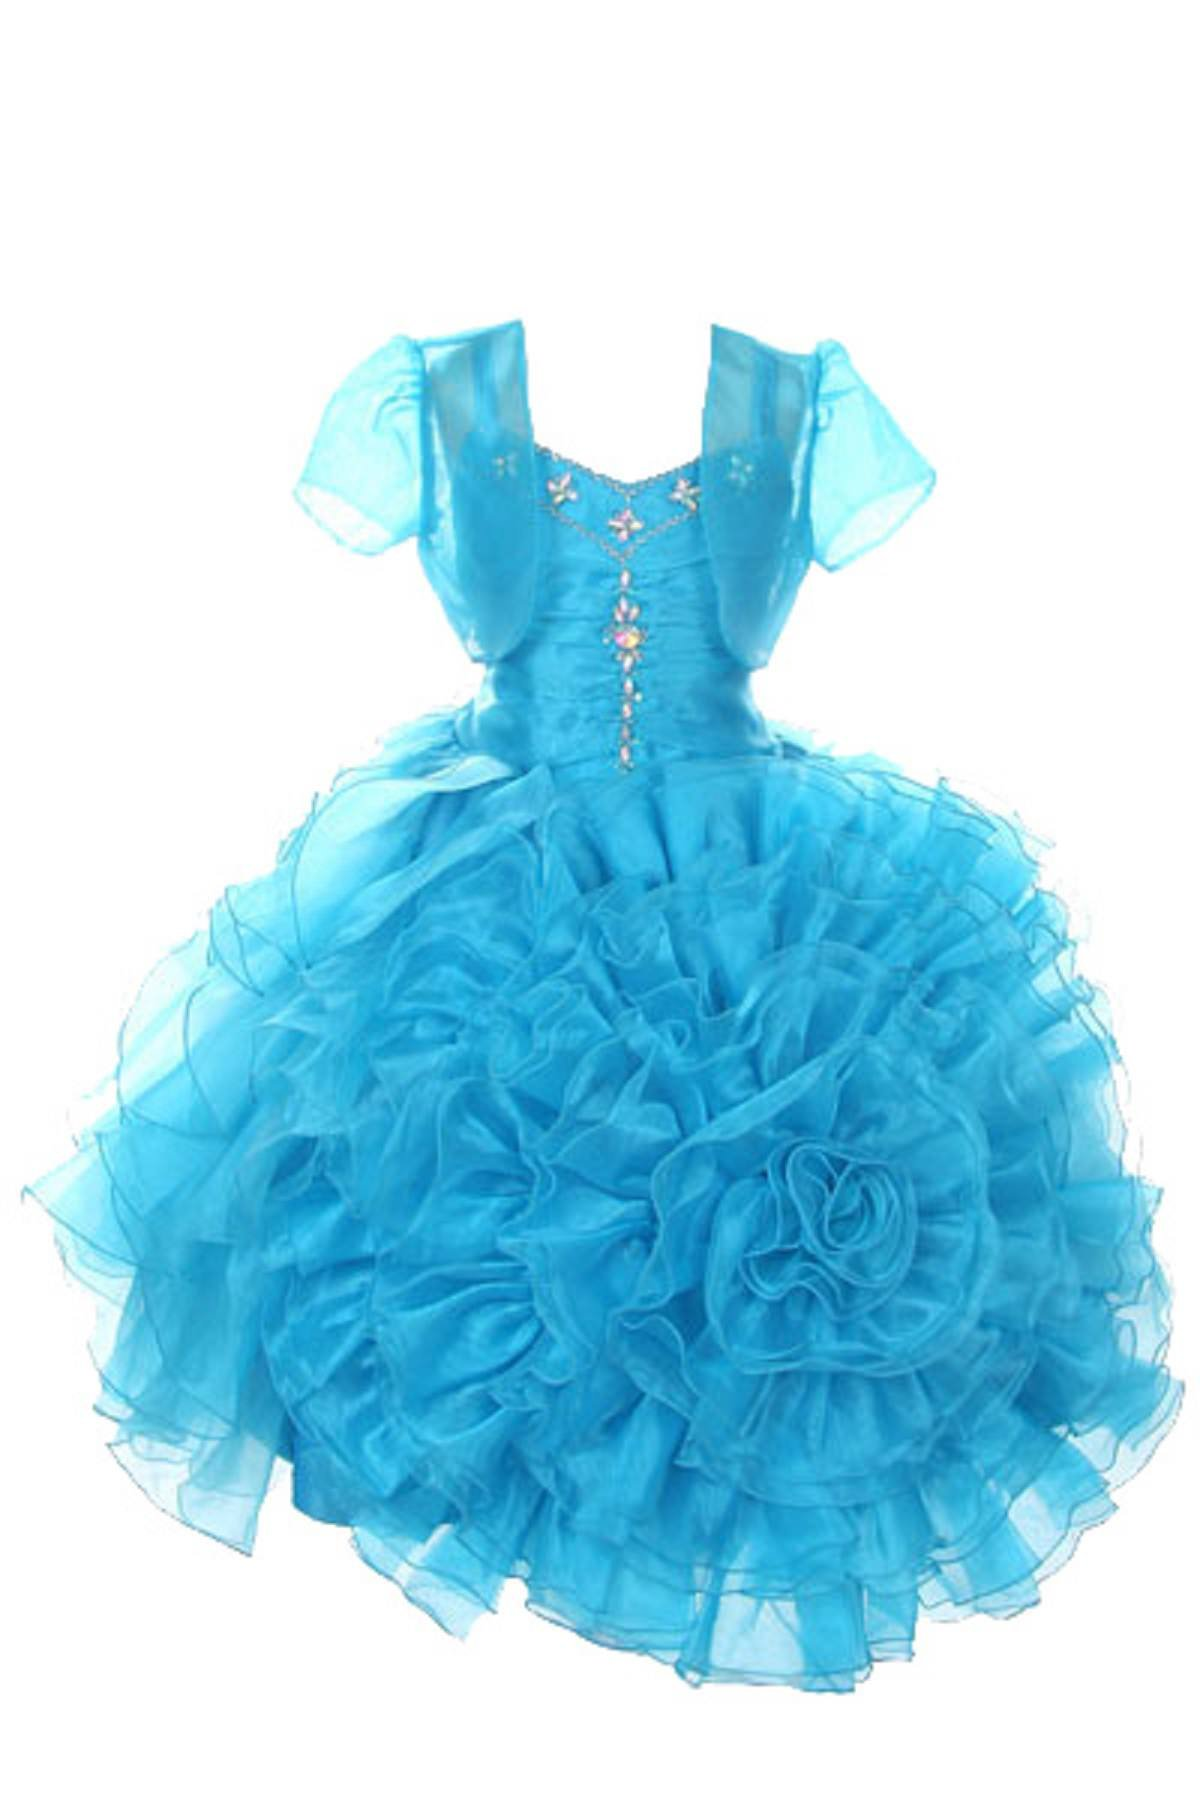 0a01f1ab4e6f SOFYANA Baby - Girl s Netted Princess Birthday Party Wear Frock ...